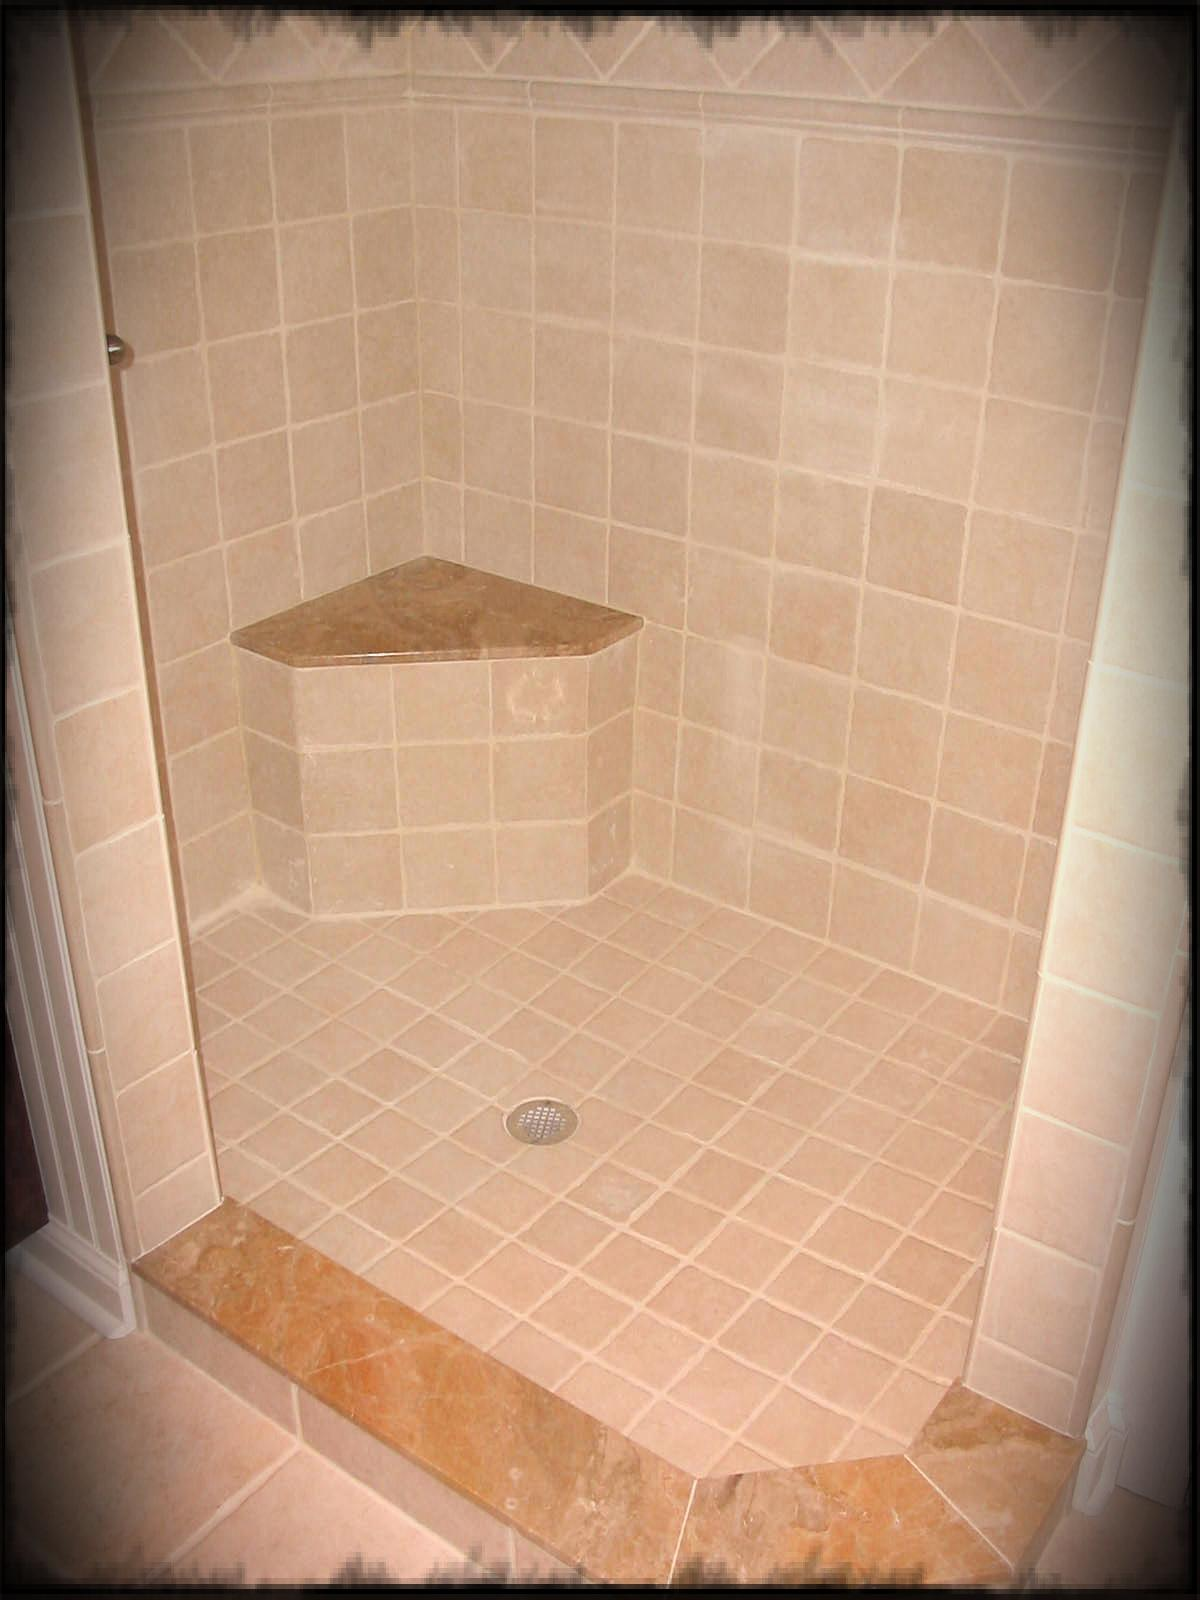 Bathroom Floor Ceramic Tile Design Ideas ~ Cool ideas and pictures custom bathroom tile designs